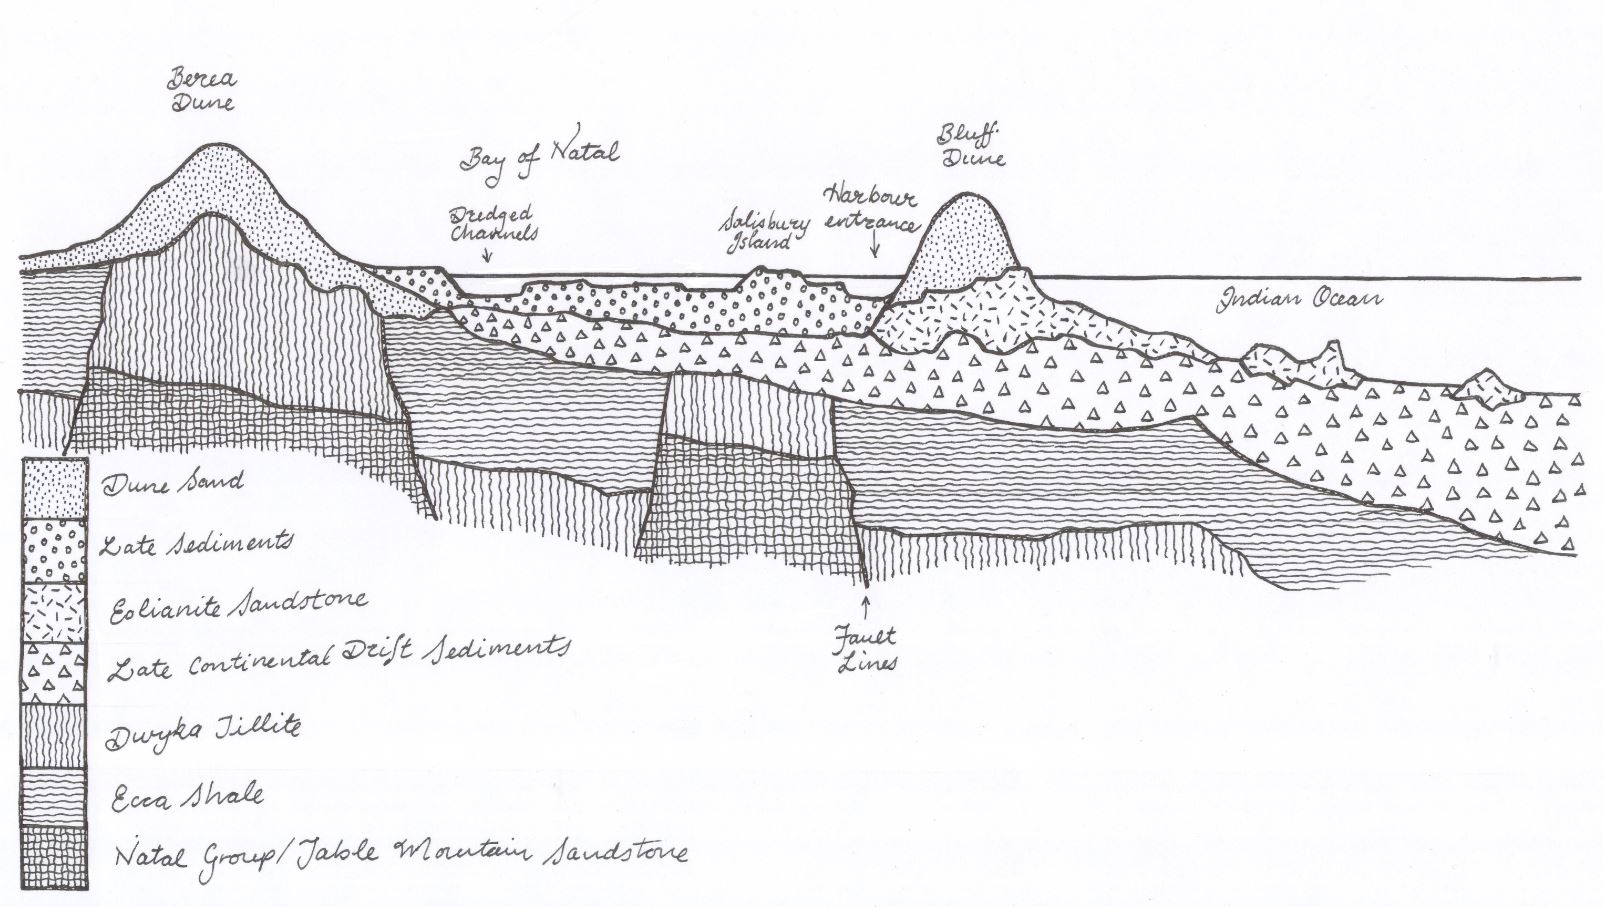 diagram of dune formation 2005 ford focus radio wiring bay natal, the bluff and berea – its | graham leslie mccallum